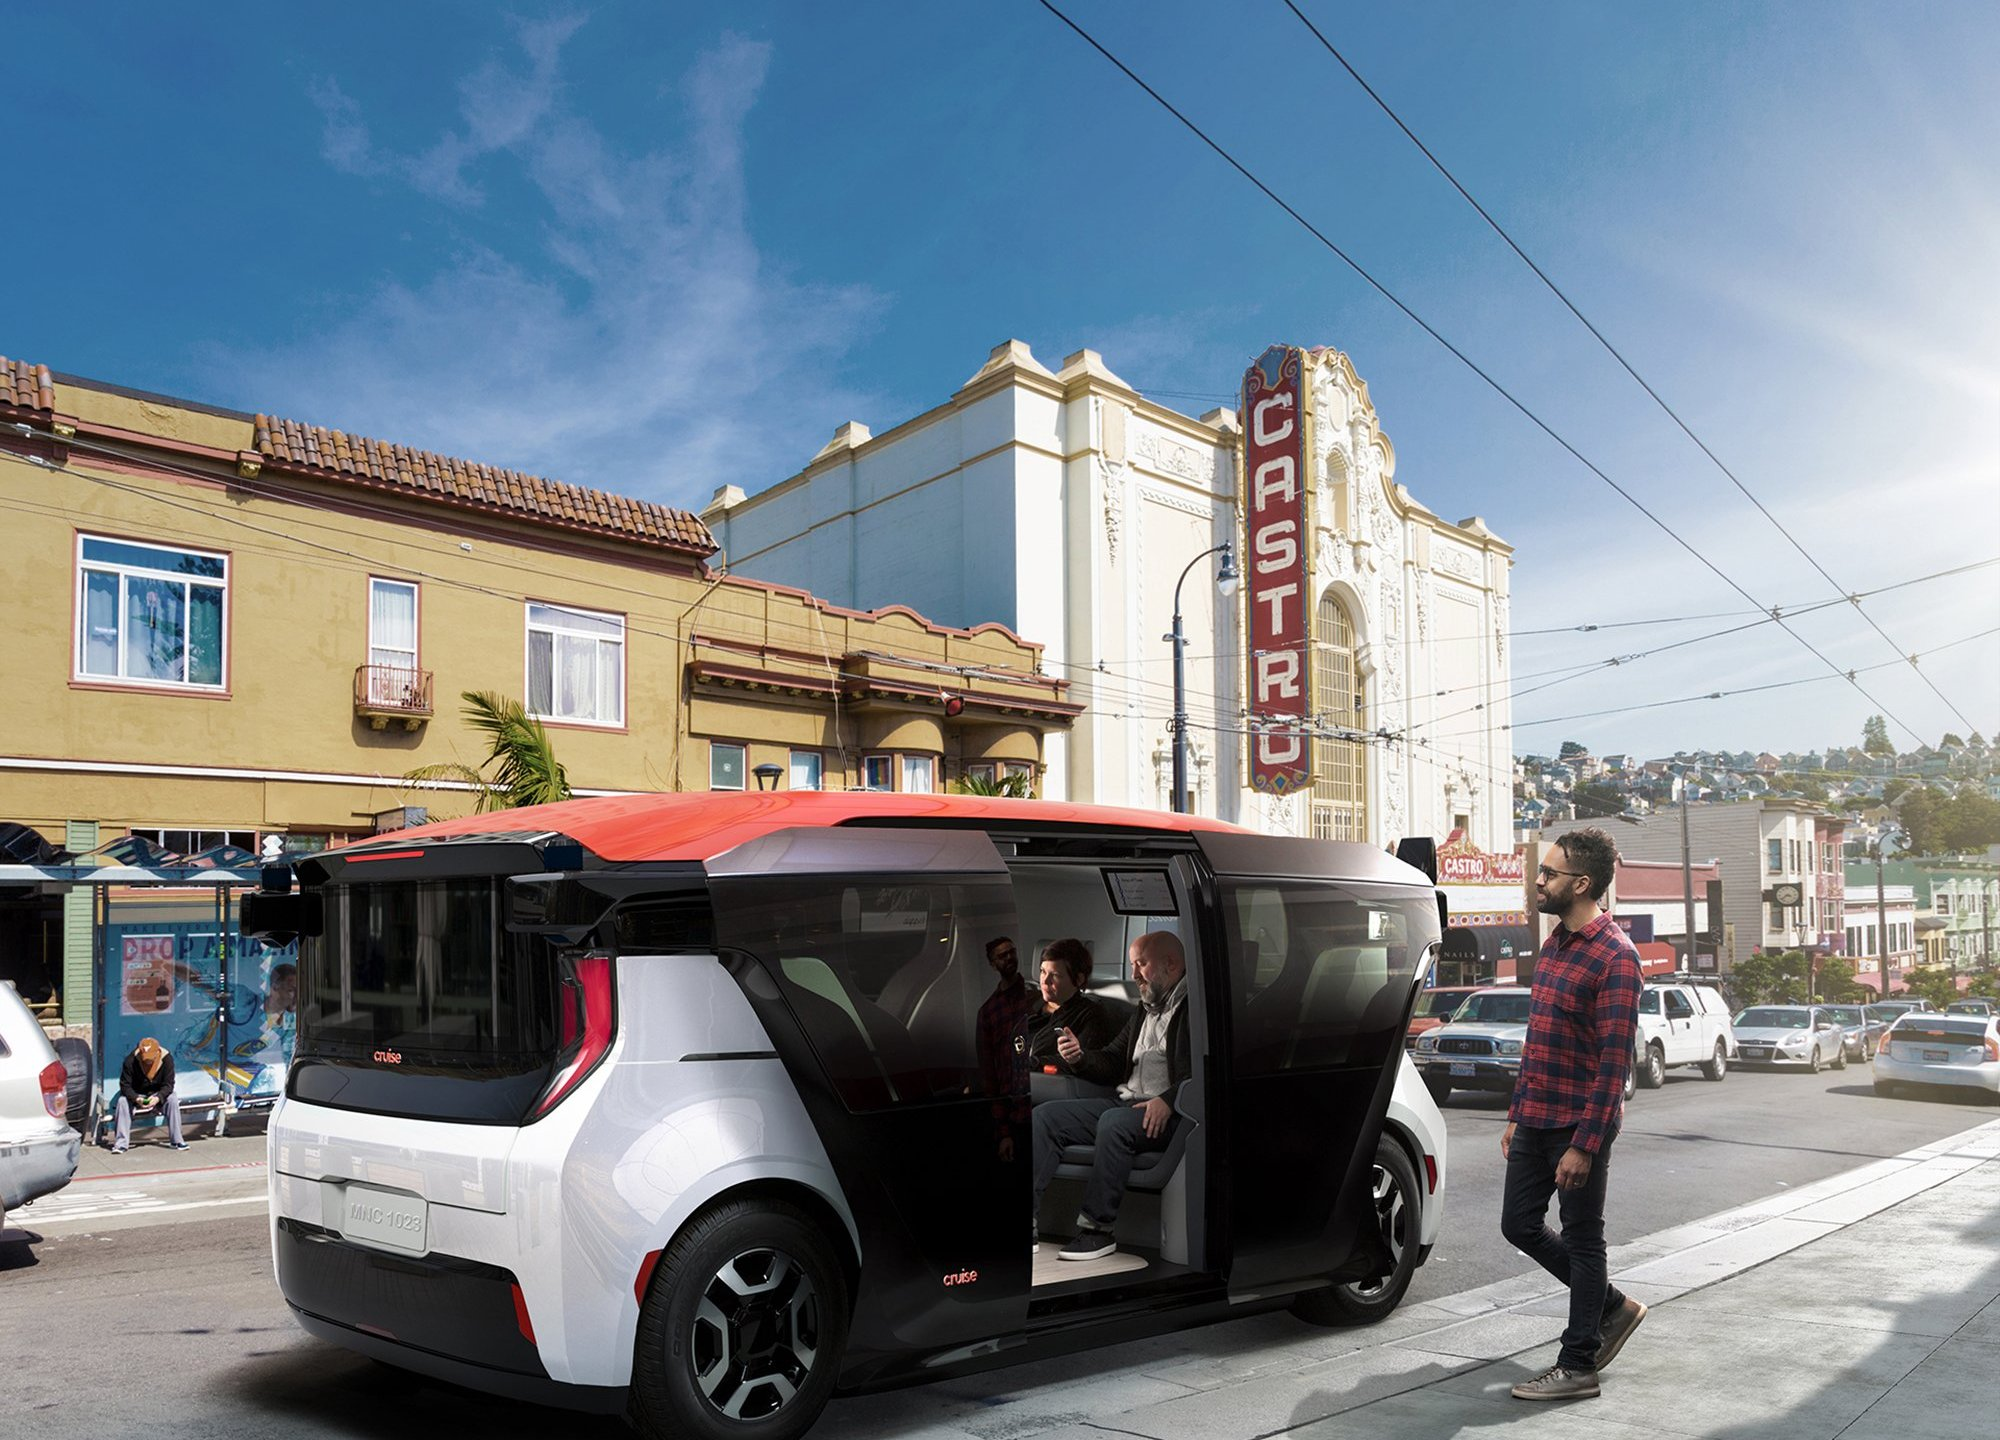 GM and Honda, automakers with more than 160 years of experience between them, have thrown tradition out the window by unveiling the Origin, a new self-driving vehicle. (Credit: Cruise)